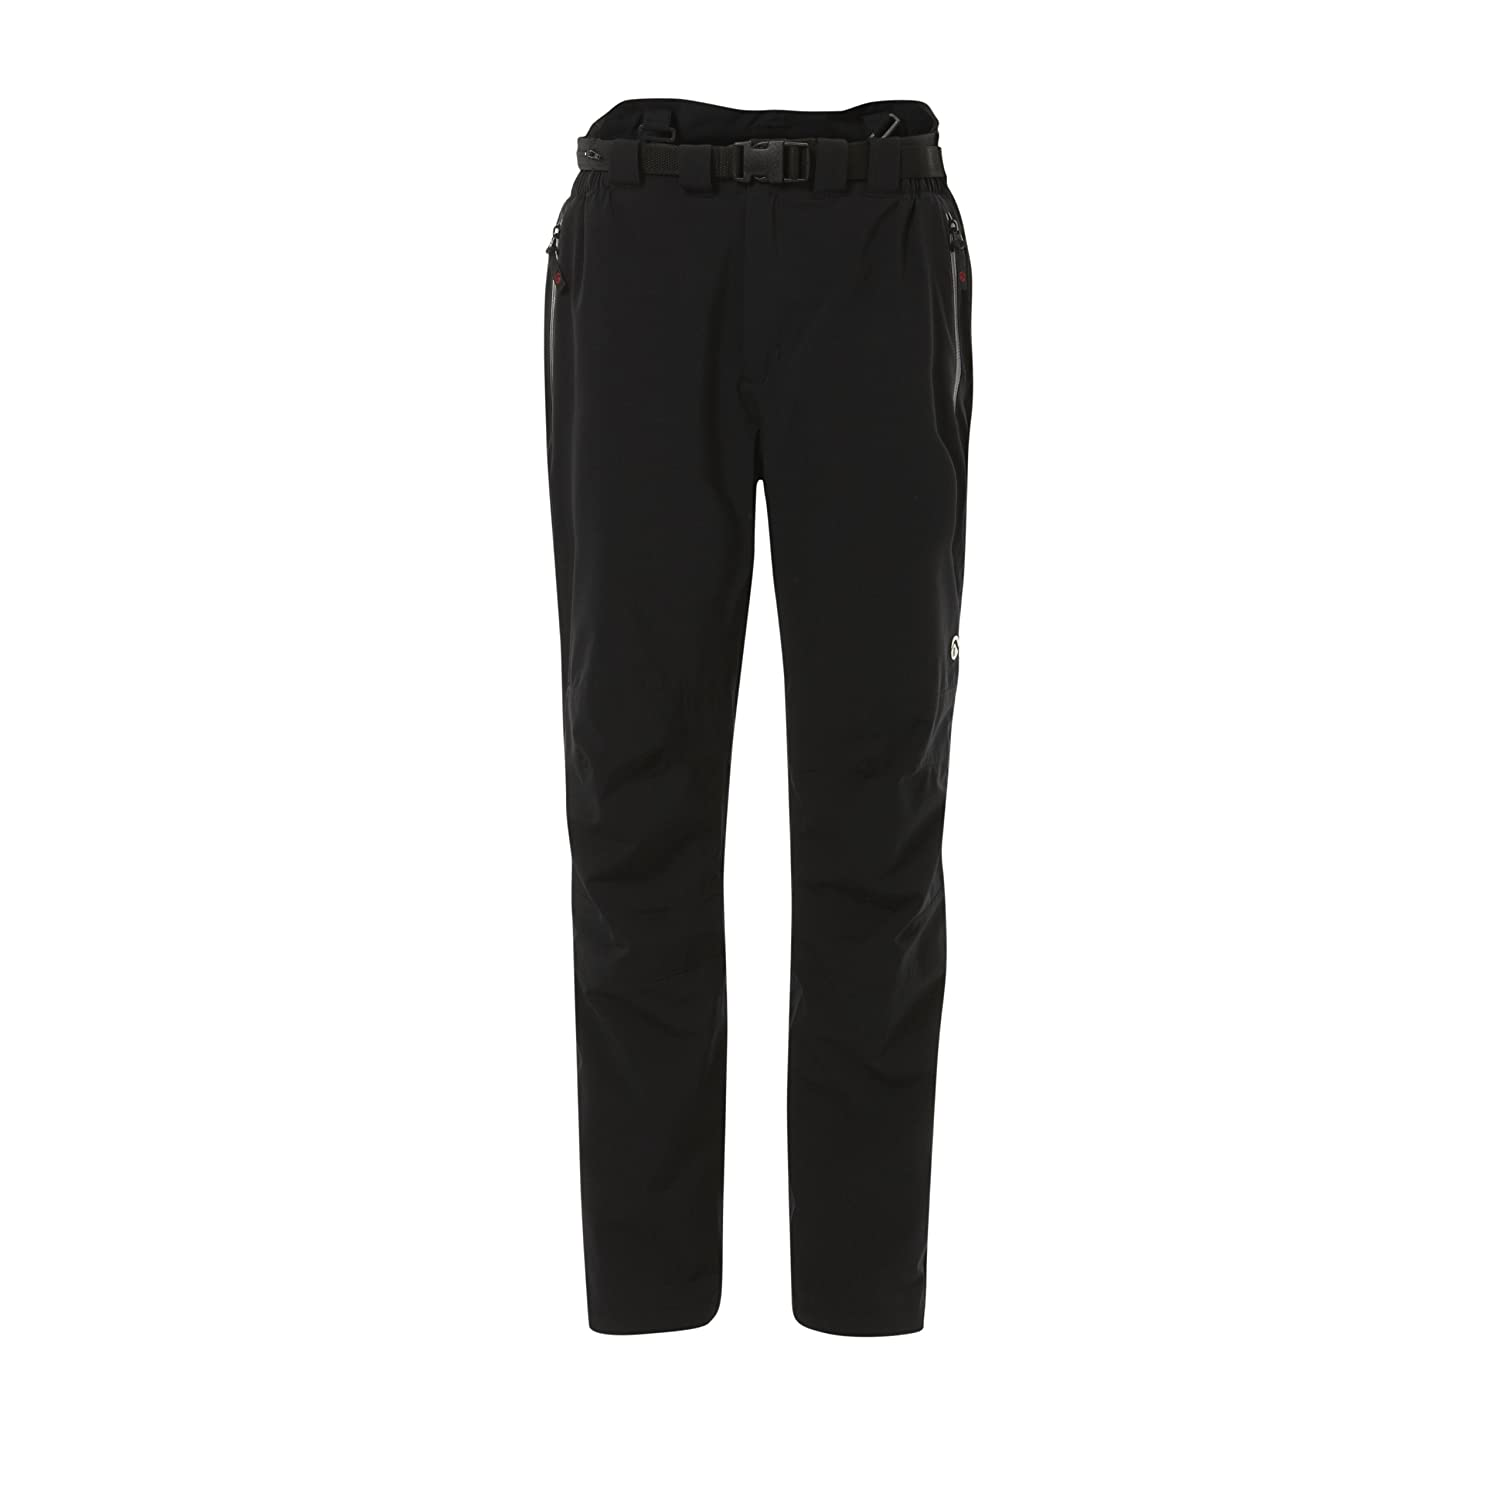 Keela Iona Advance System Pantalon Long Double Protection